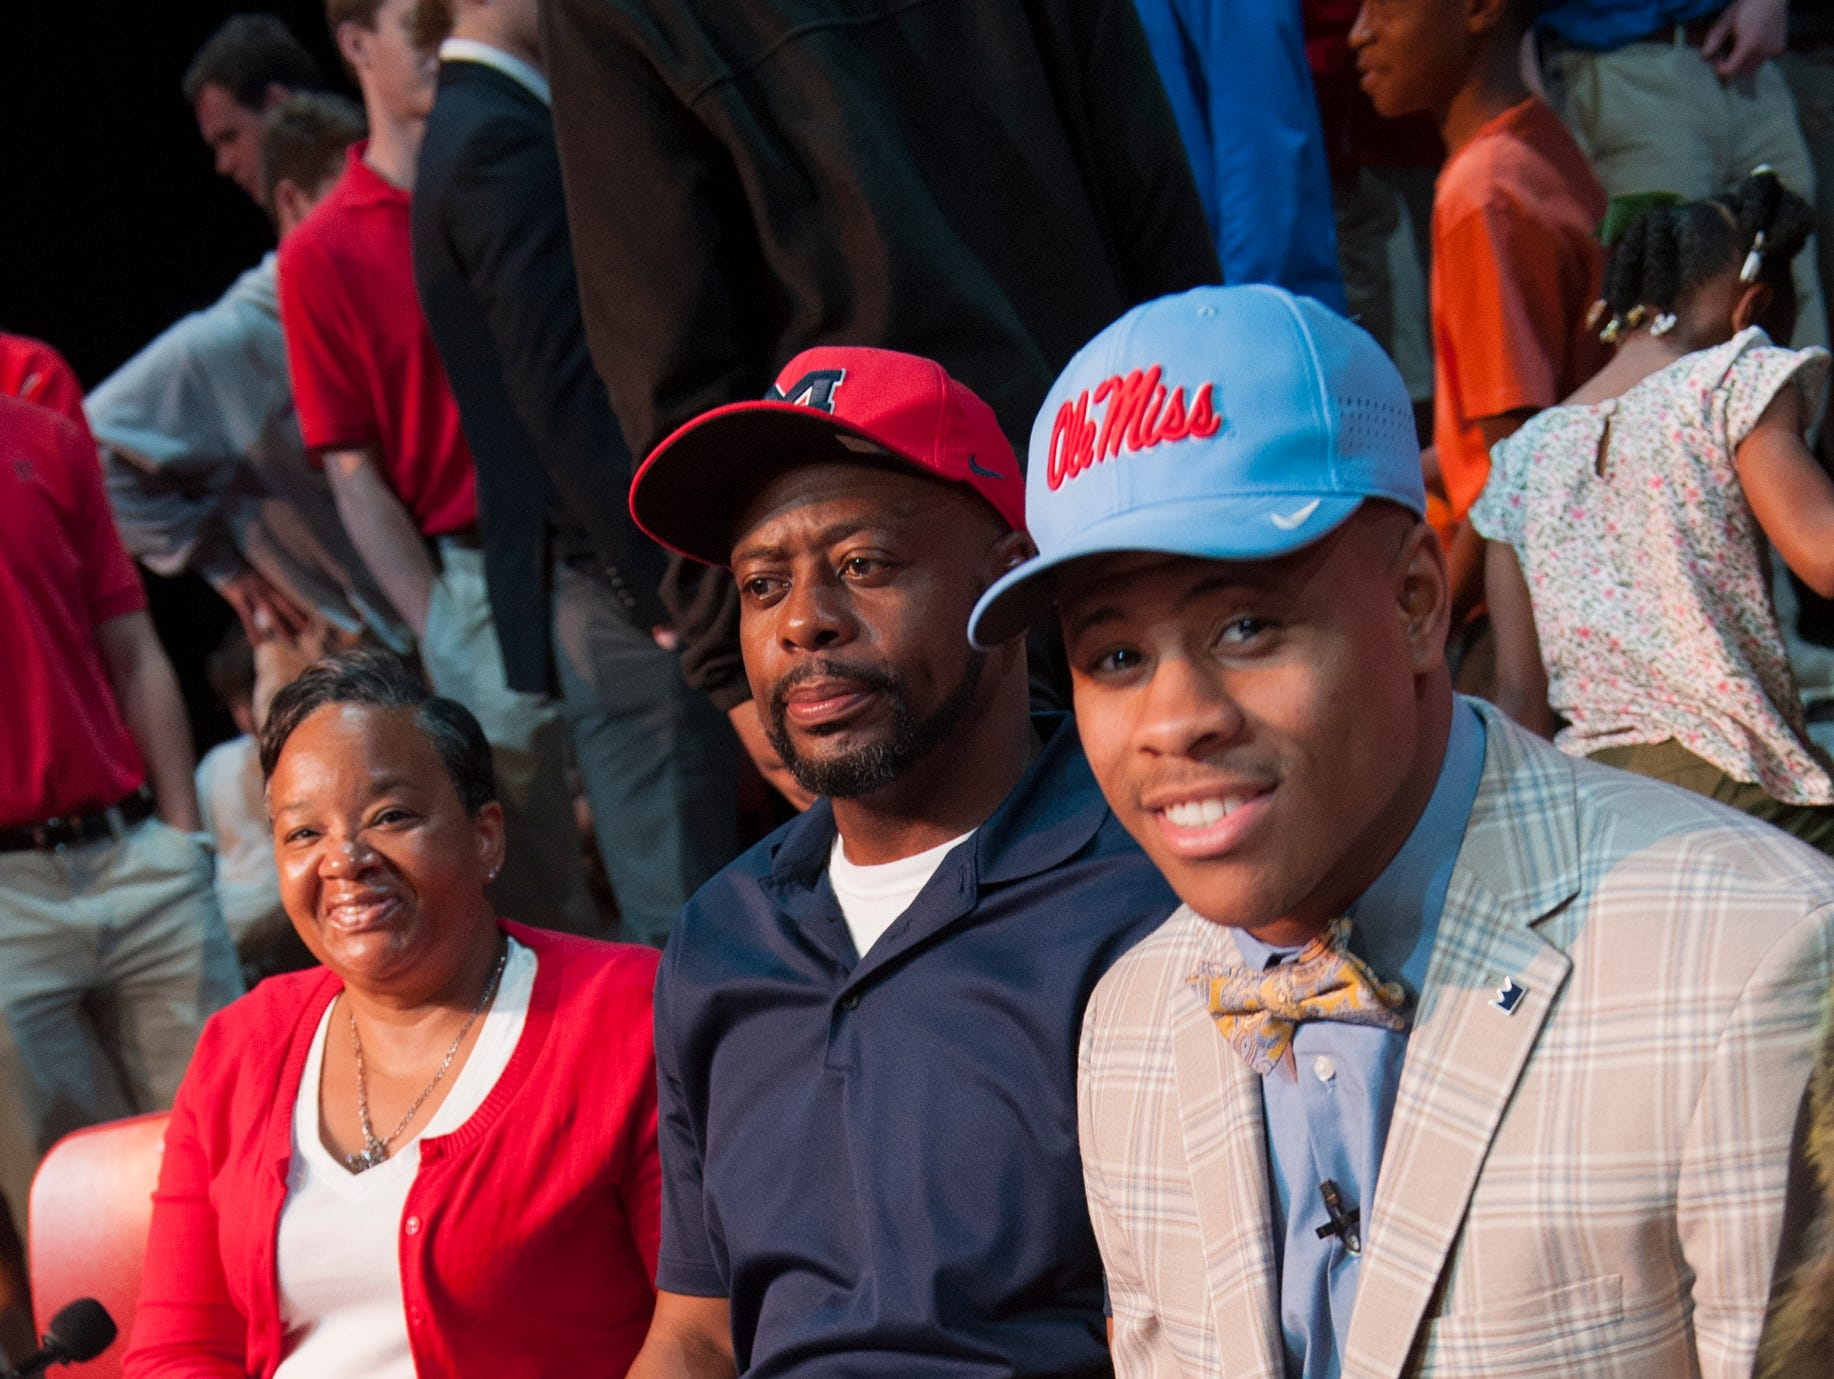 With his signed paperwork to play for Ole Miss on the table before him, a smiling Jerrion Ealy, from left, sits at the table beside his father Howard Ealy and stepmother Tricia Ealy during Sign Day activities at Jackson Prep Friday, Feb. 6, 2019.